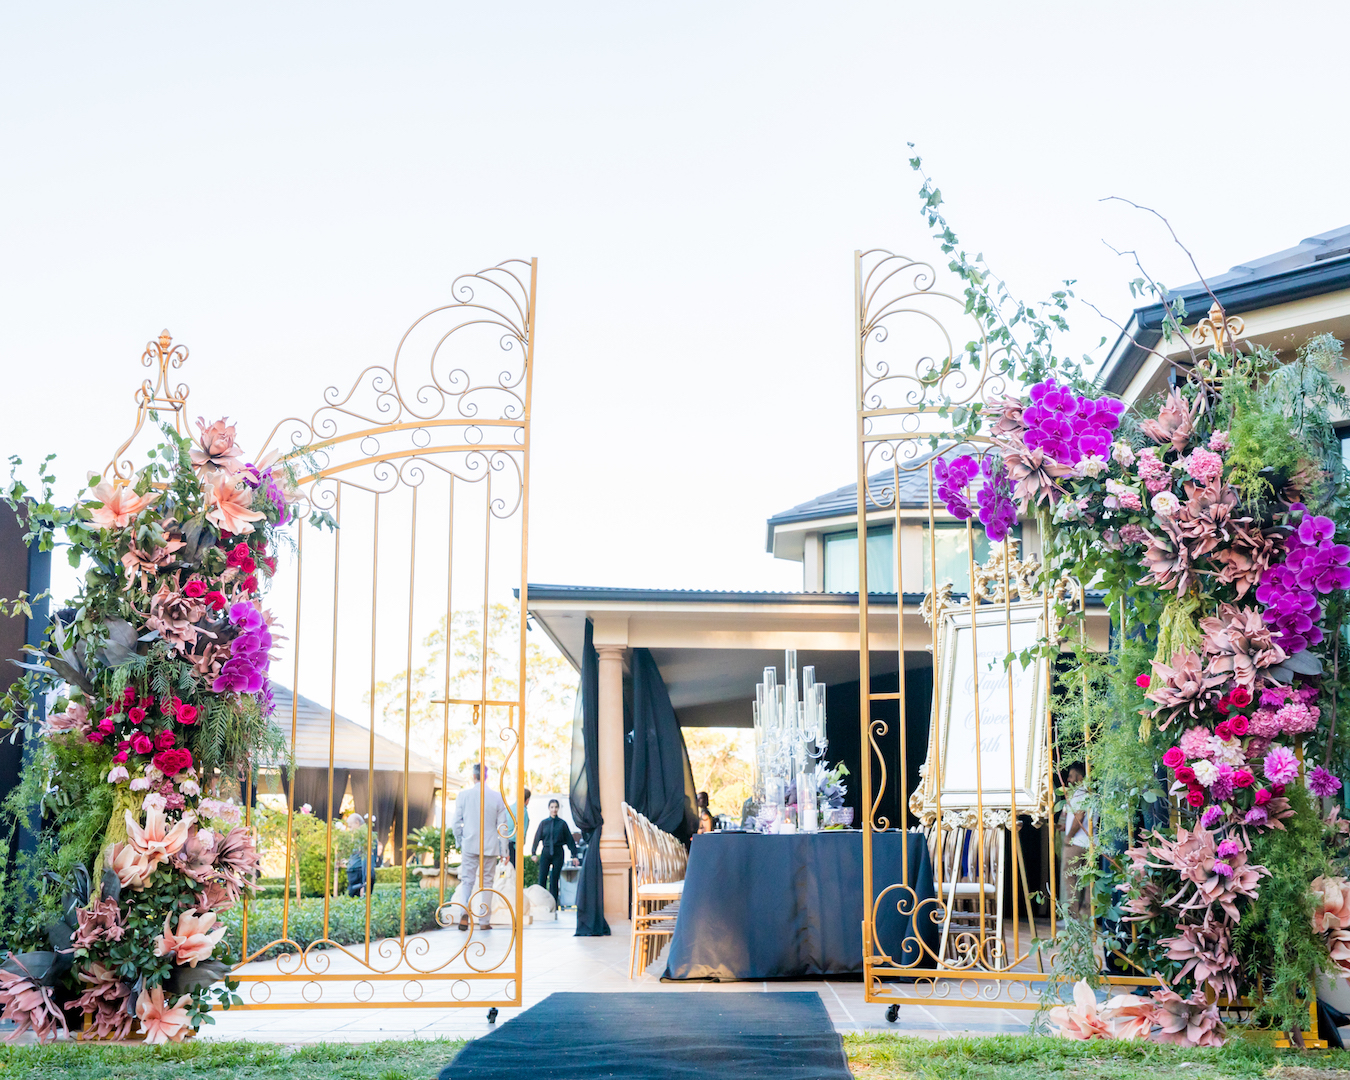 love, hope, flowers, lhflowers, wedding flowers, flowers, Sydney, Sydney florist, private function, sweet, 16, birthday, orchids, destination event, floral entrance, glenorie, garden roses,